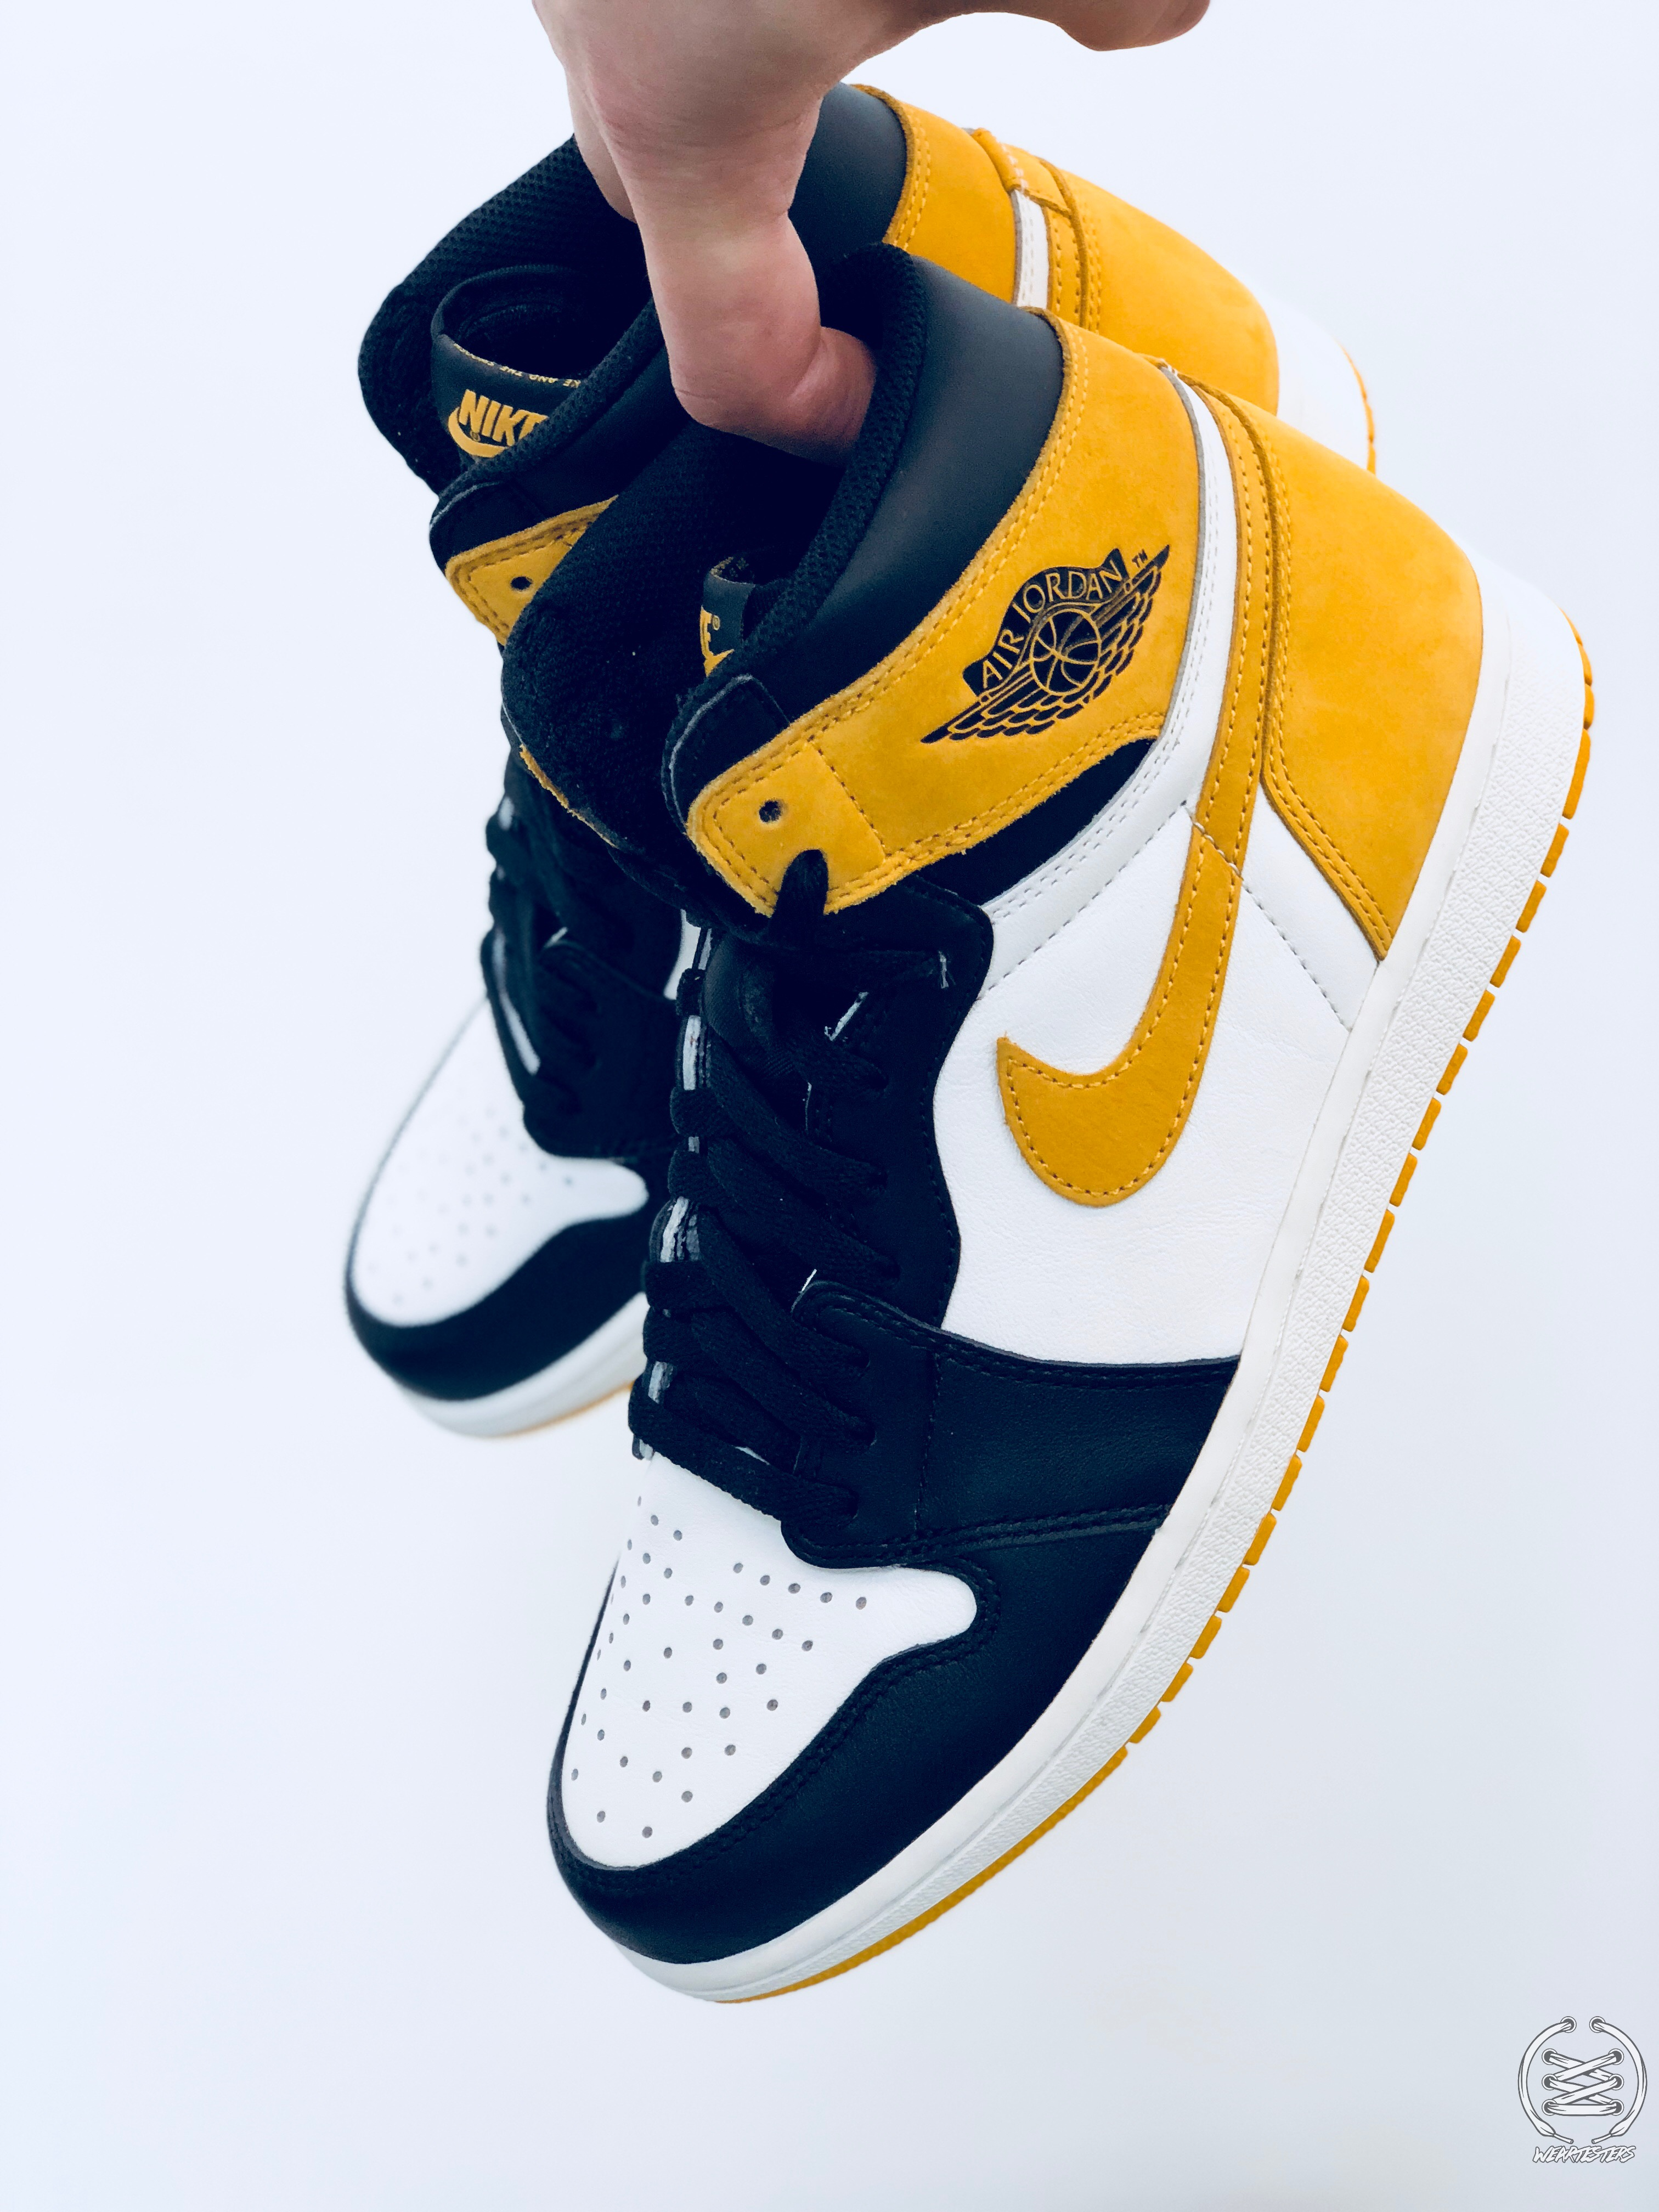 half off 09fd3 1c2e8 Air Jordan 1 Yellow Ochre Best Hand in the Game collection ...